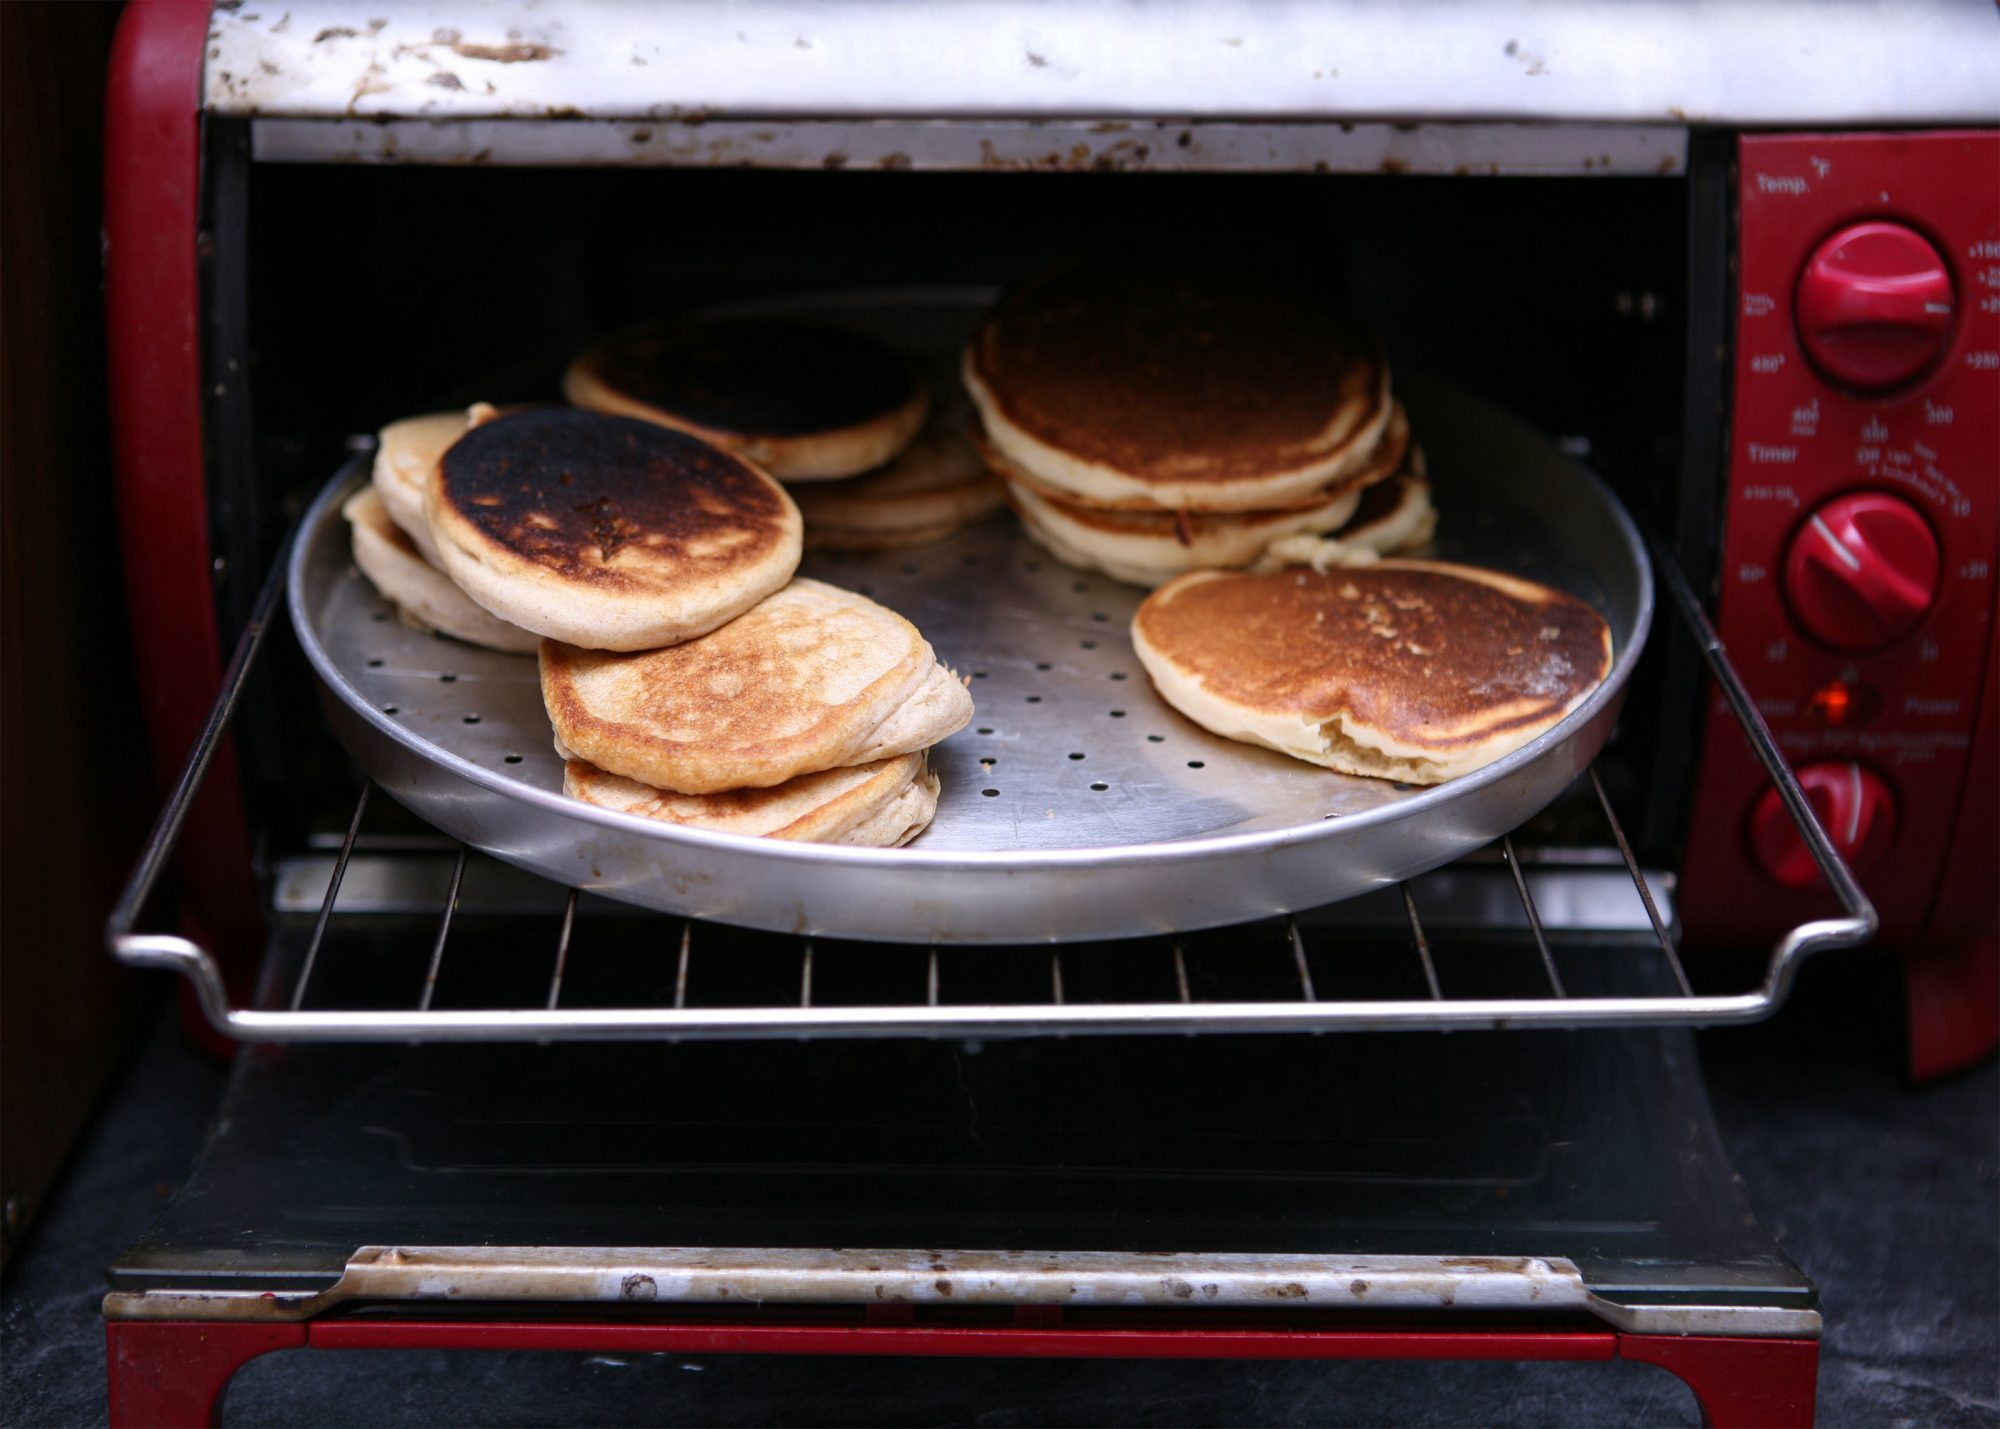 Toaster Oven with Burned Pancakes